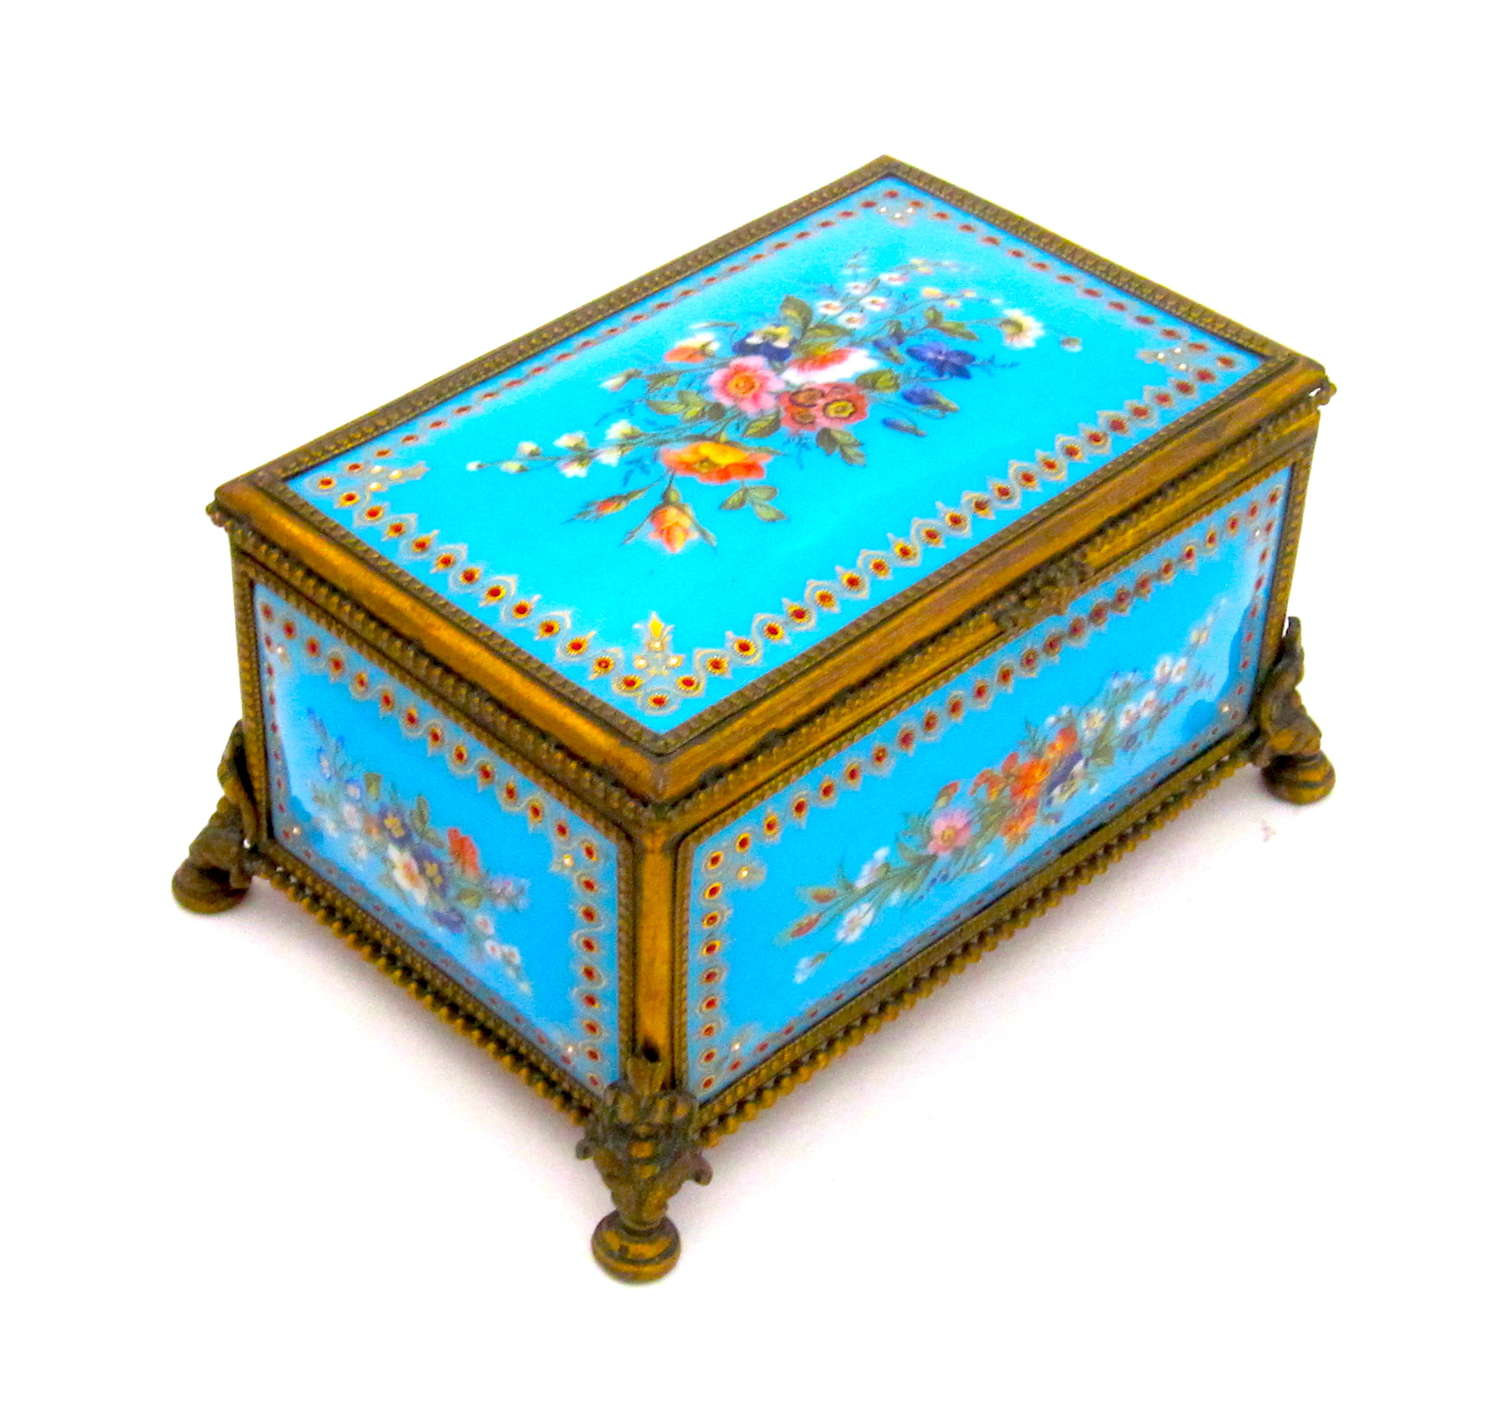 Palais Royal Antique Turquoise  Jewel Casket with Enamelled Panels